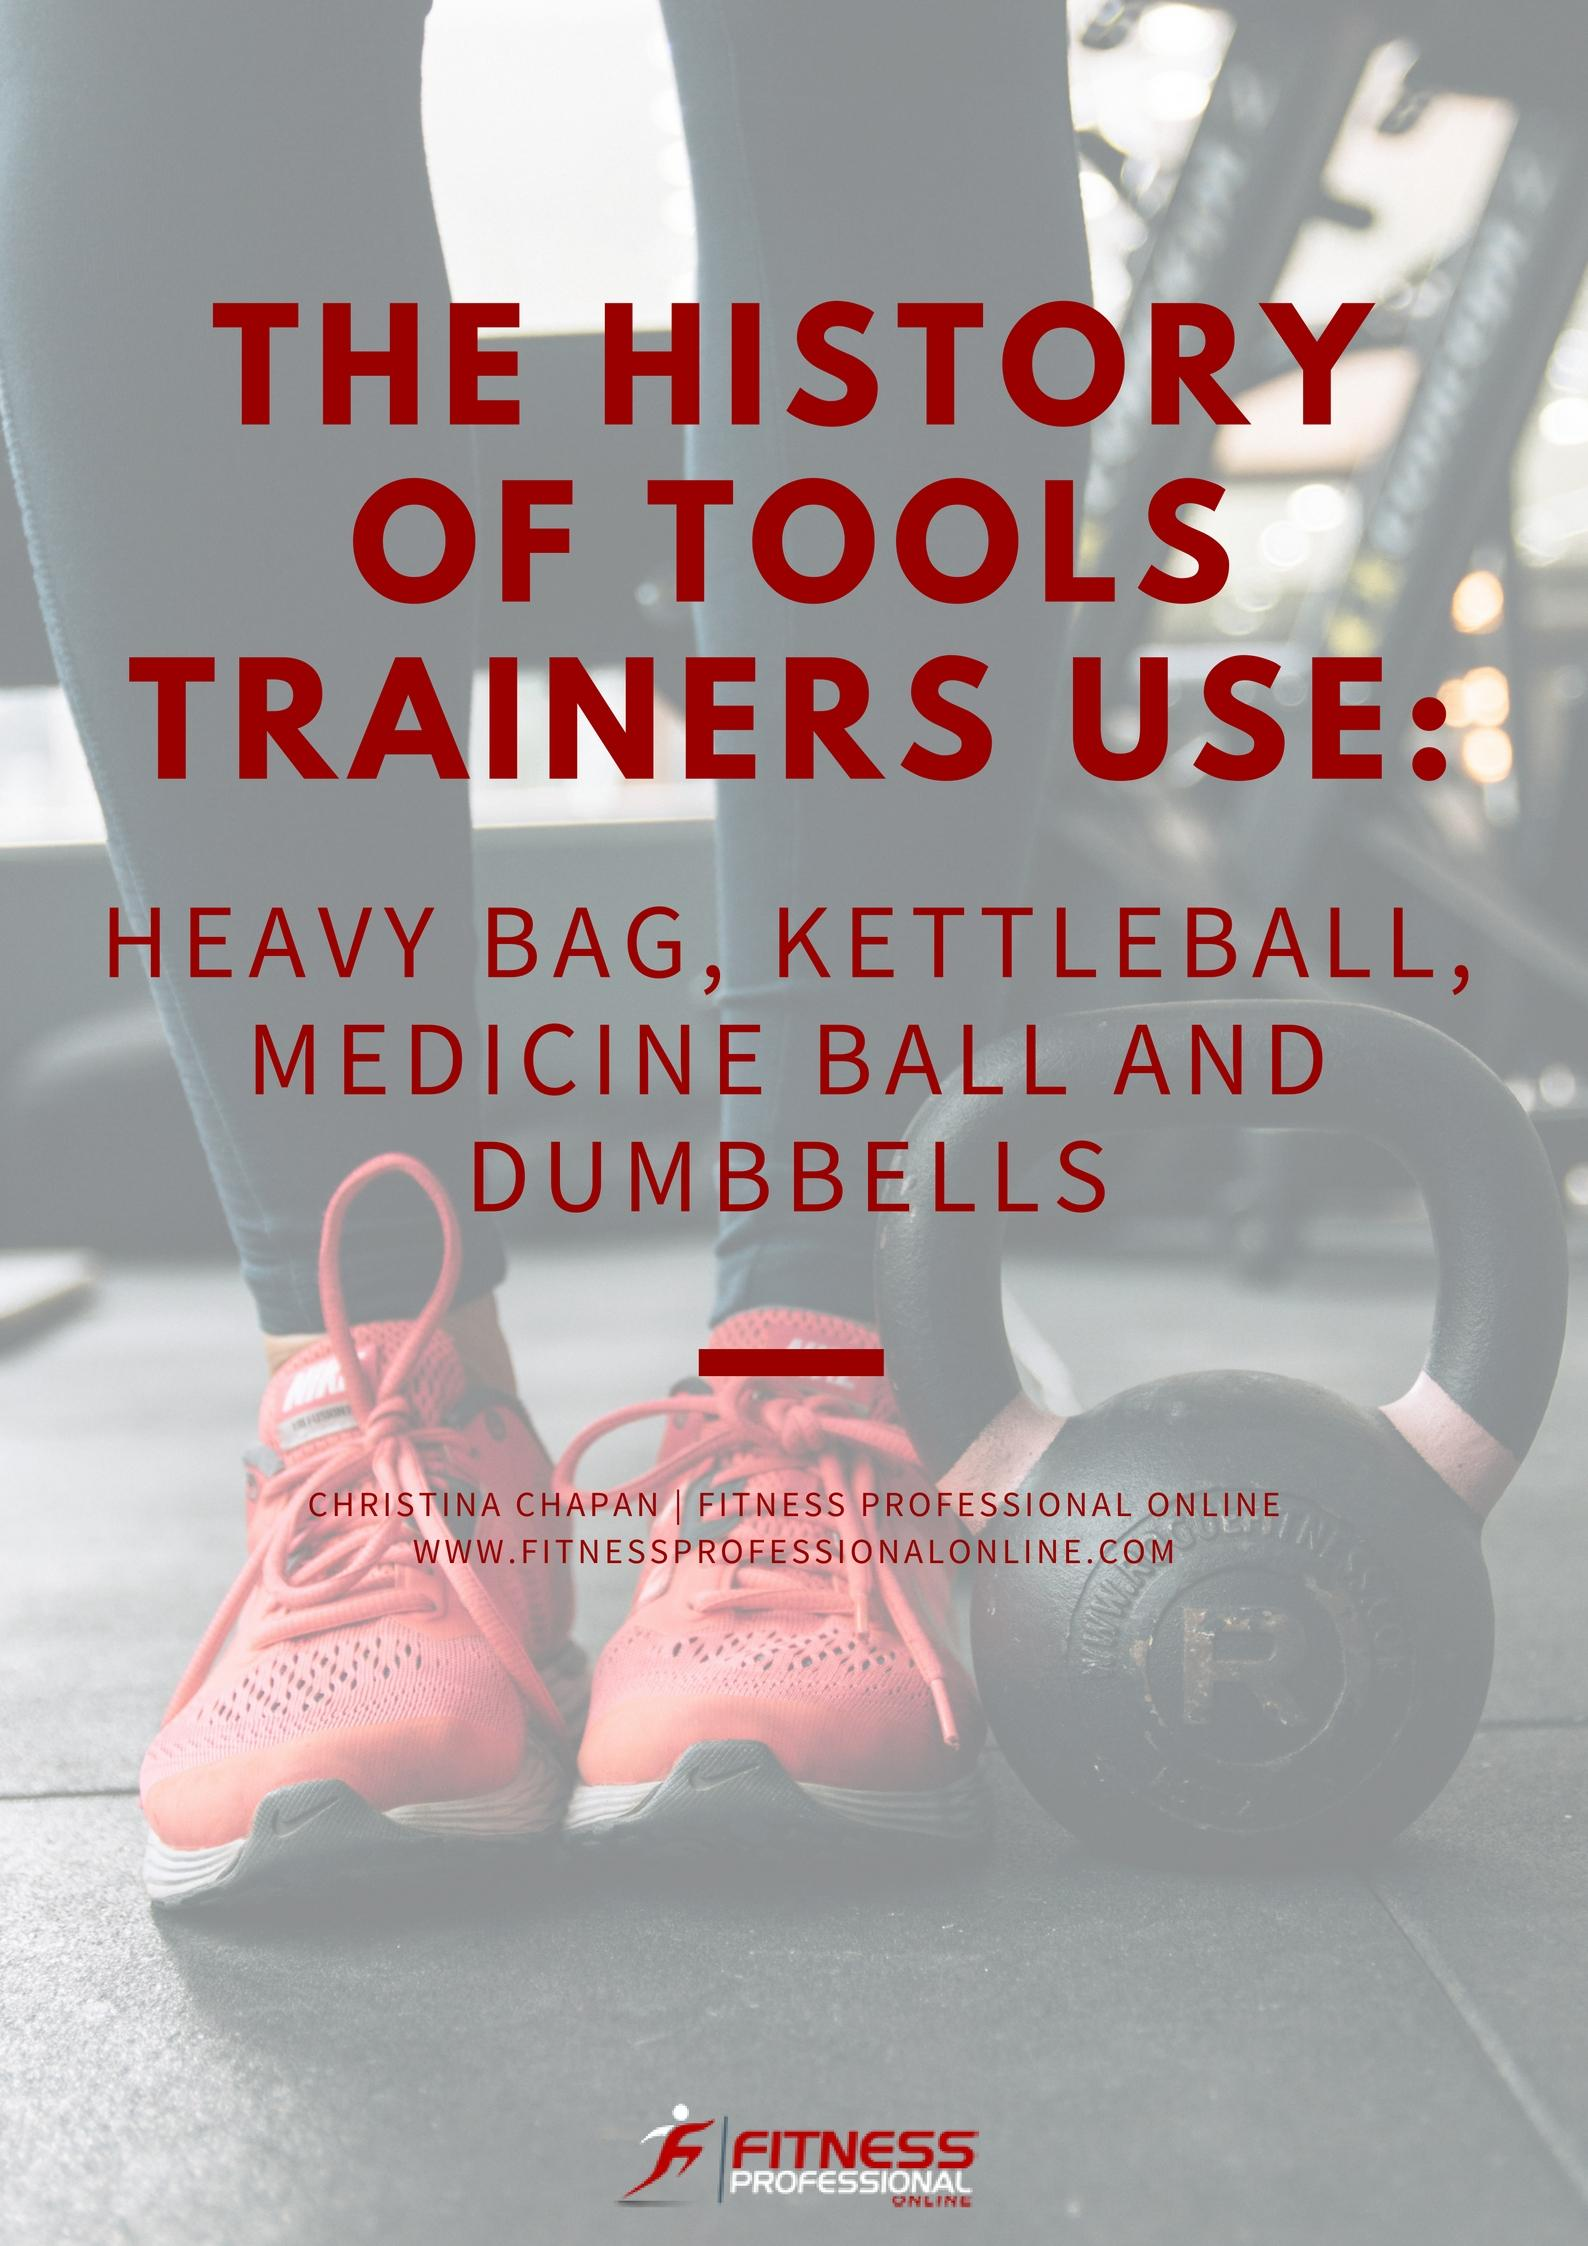 There are many tools in the gym but do you know the history of them? Here is an article about the tools we use in the gym.